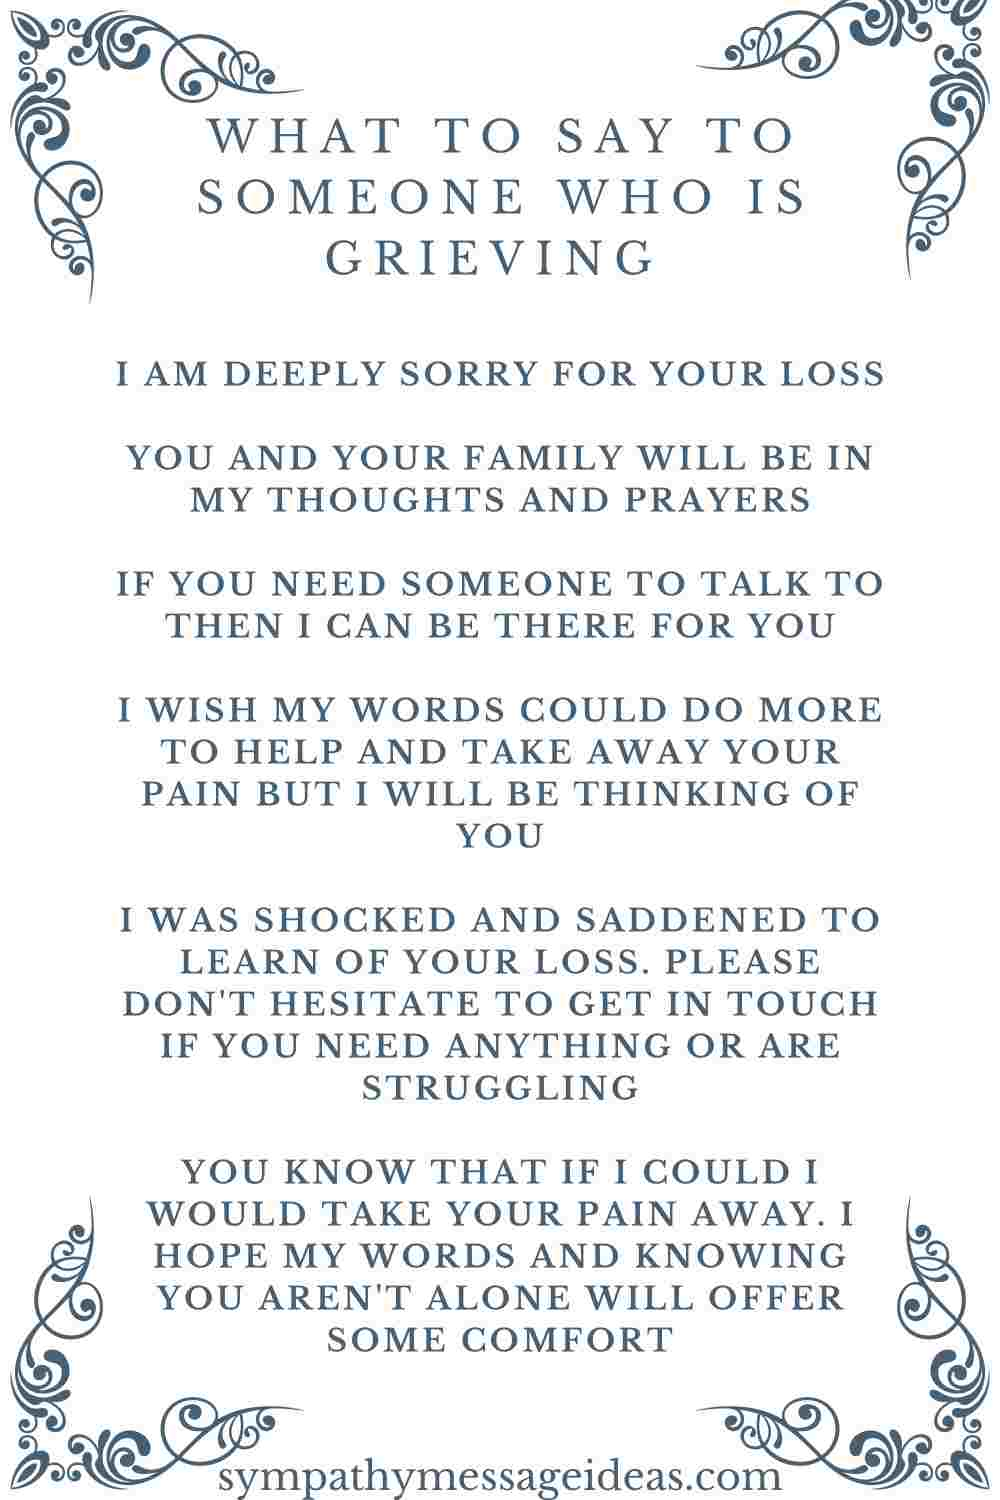 ideas for what to say to someone who is grieving